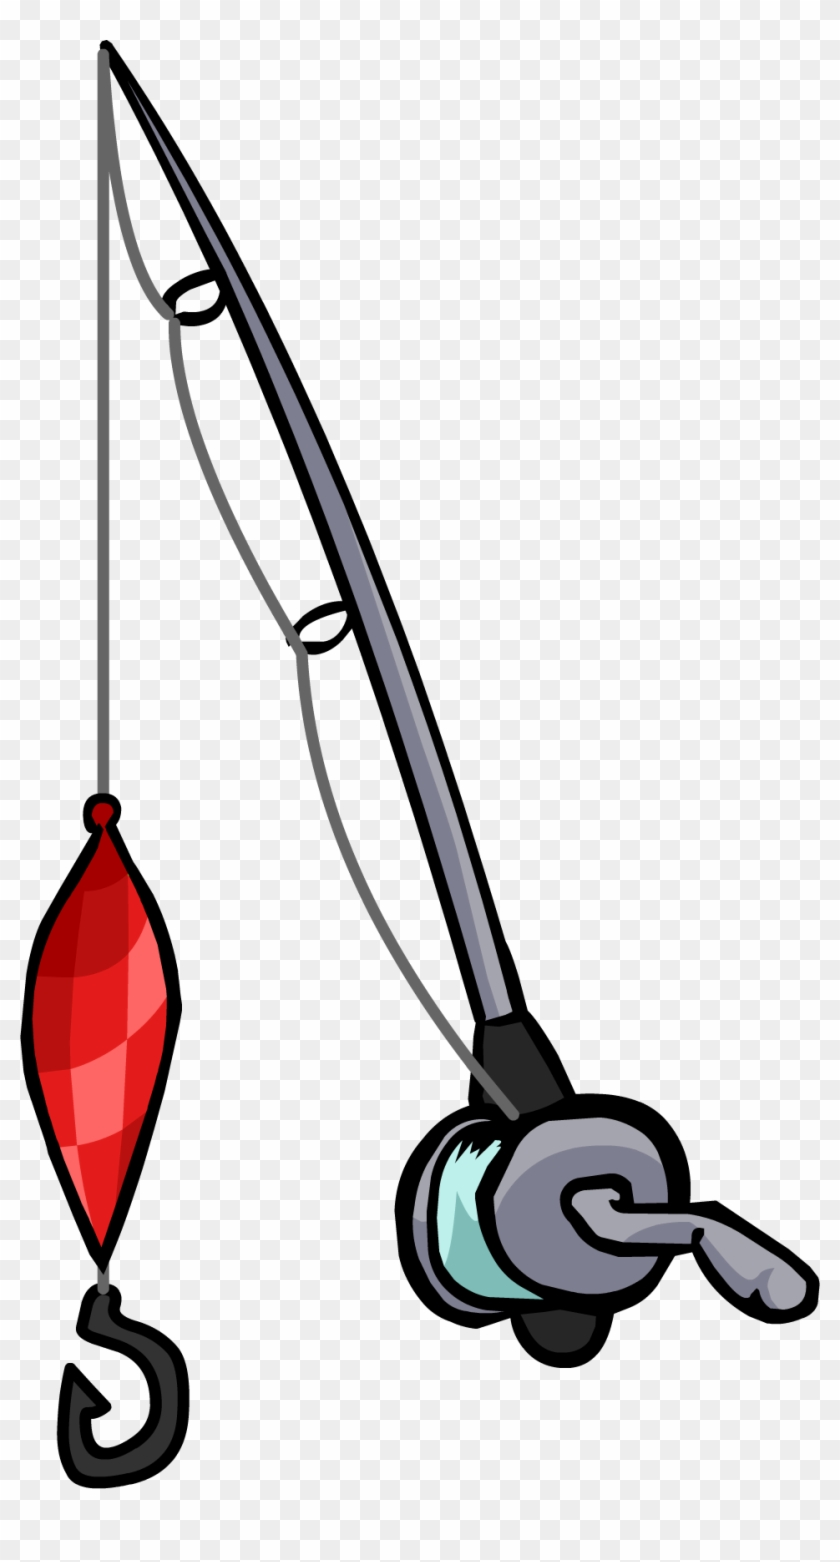 Fishing Rod Clipart Real - Imagenes De Caña De Pescar #88423